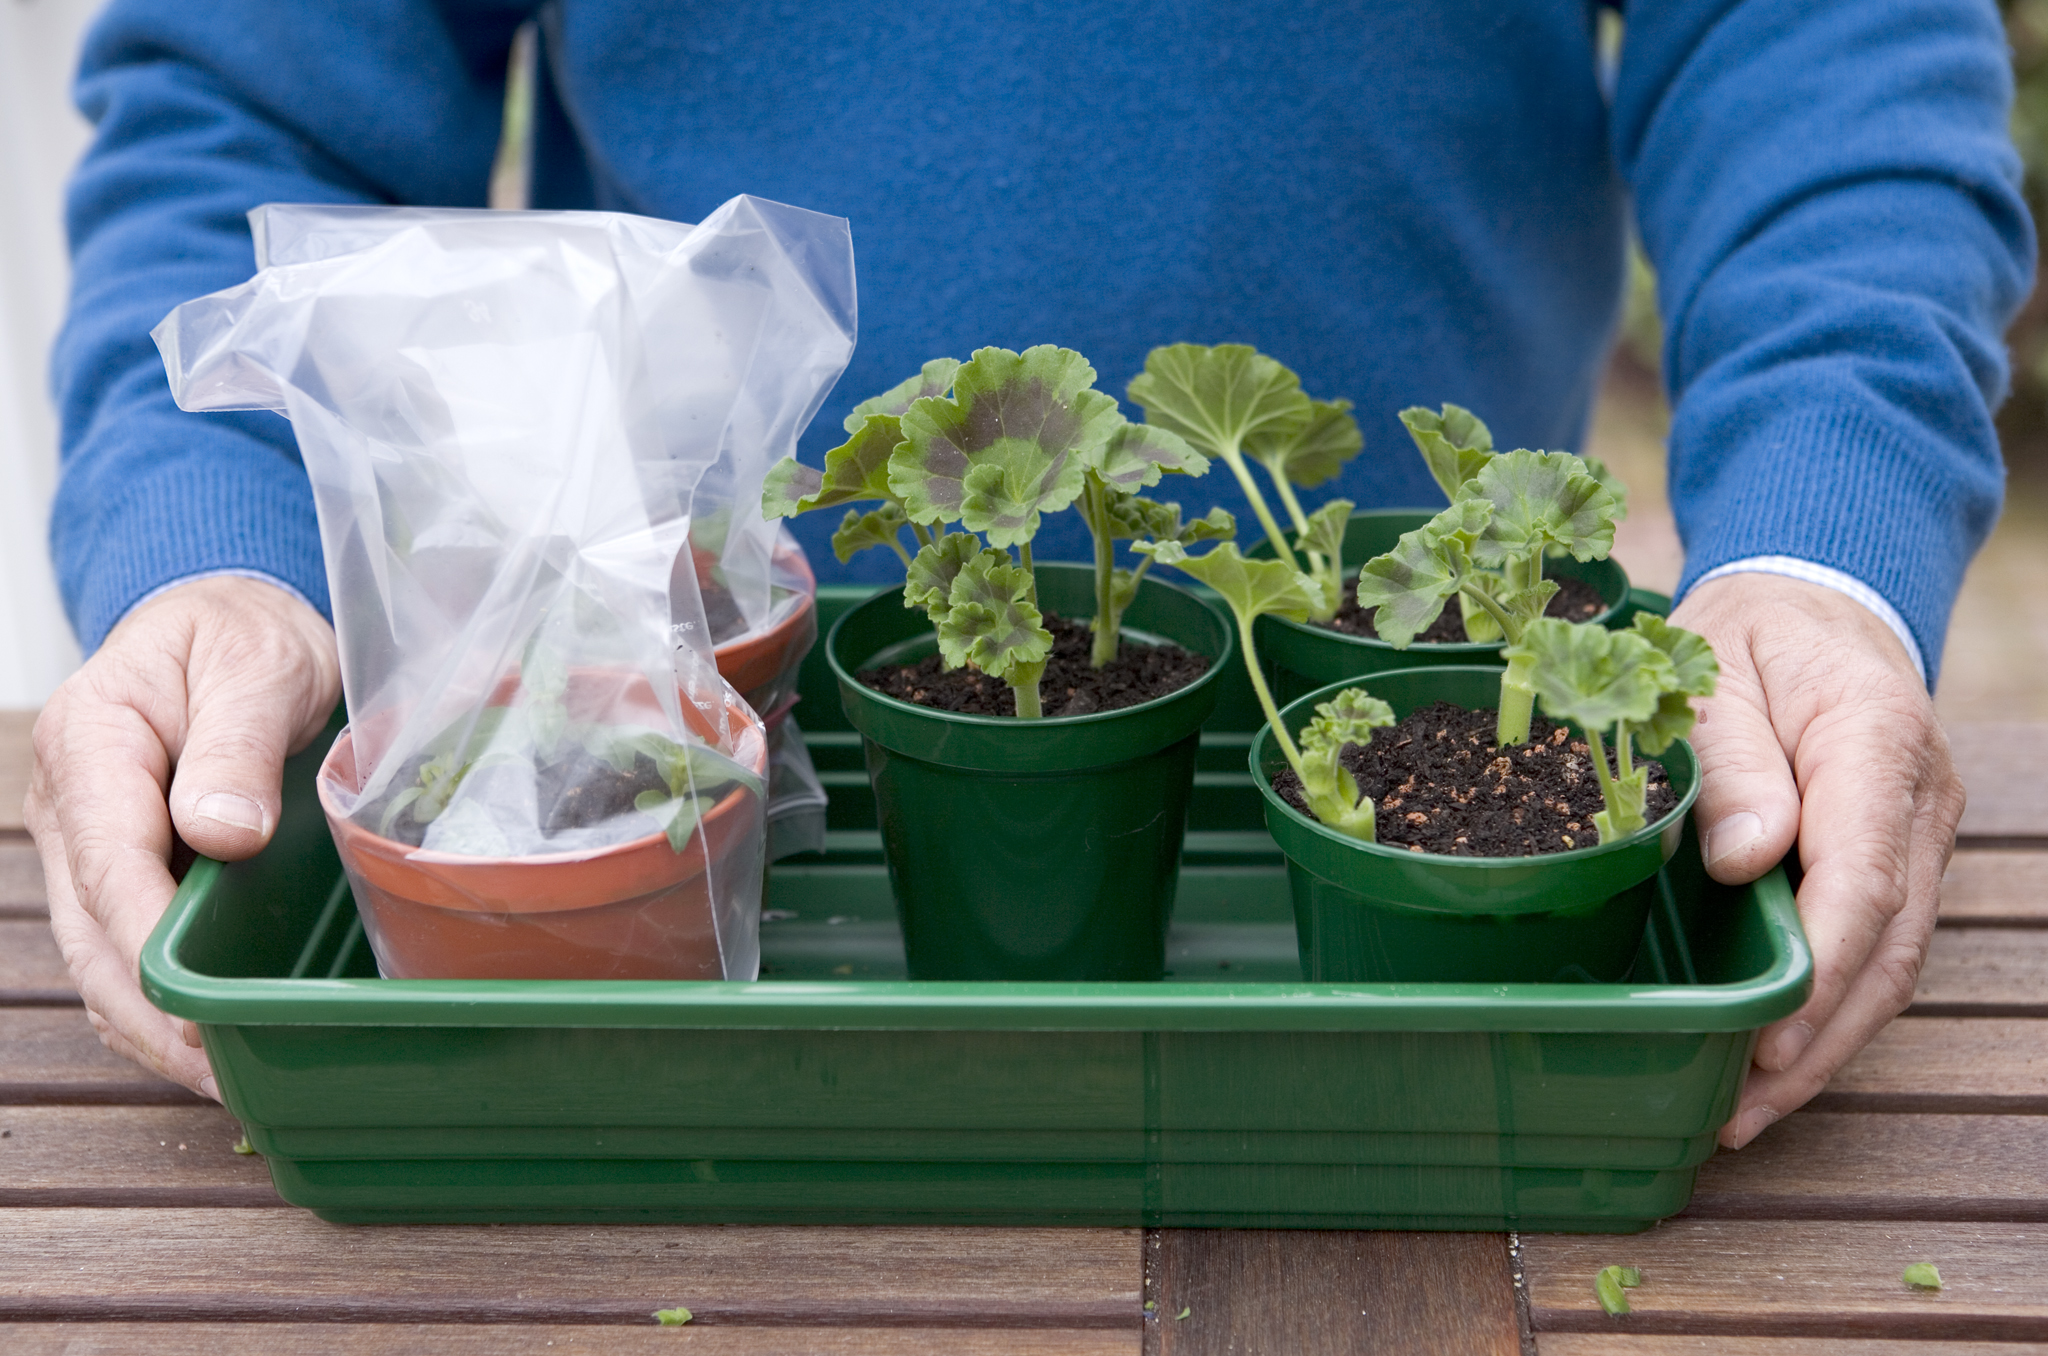 Geranium cuttings